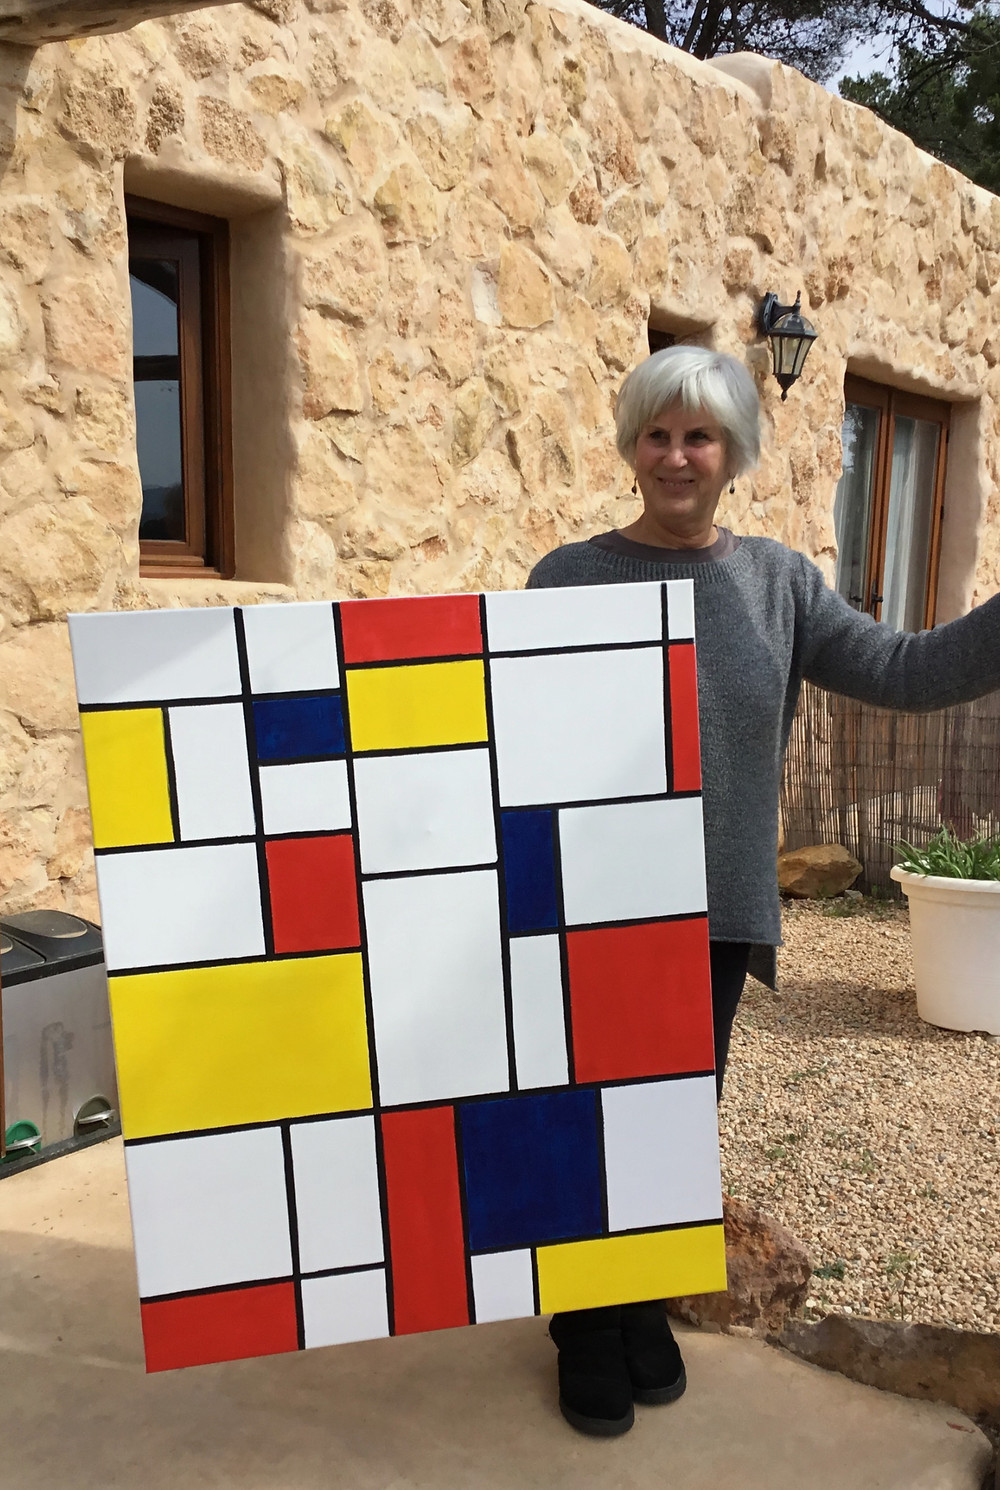 The artist displays the finished Mondrian-inspired grid painting in black, white, red, yellow and blue.